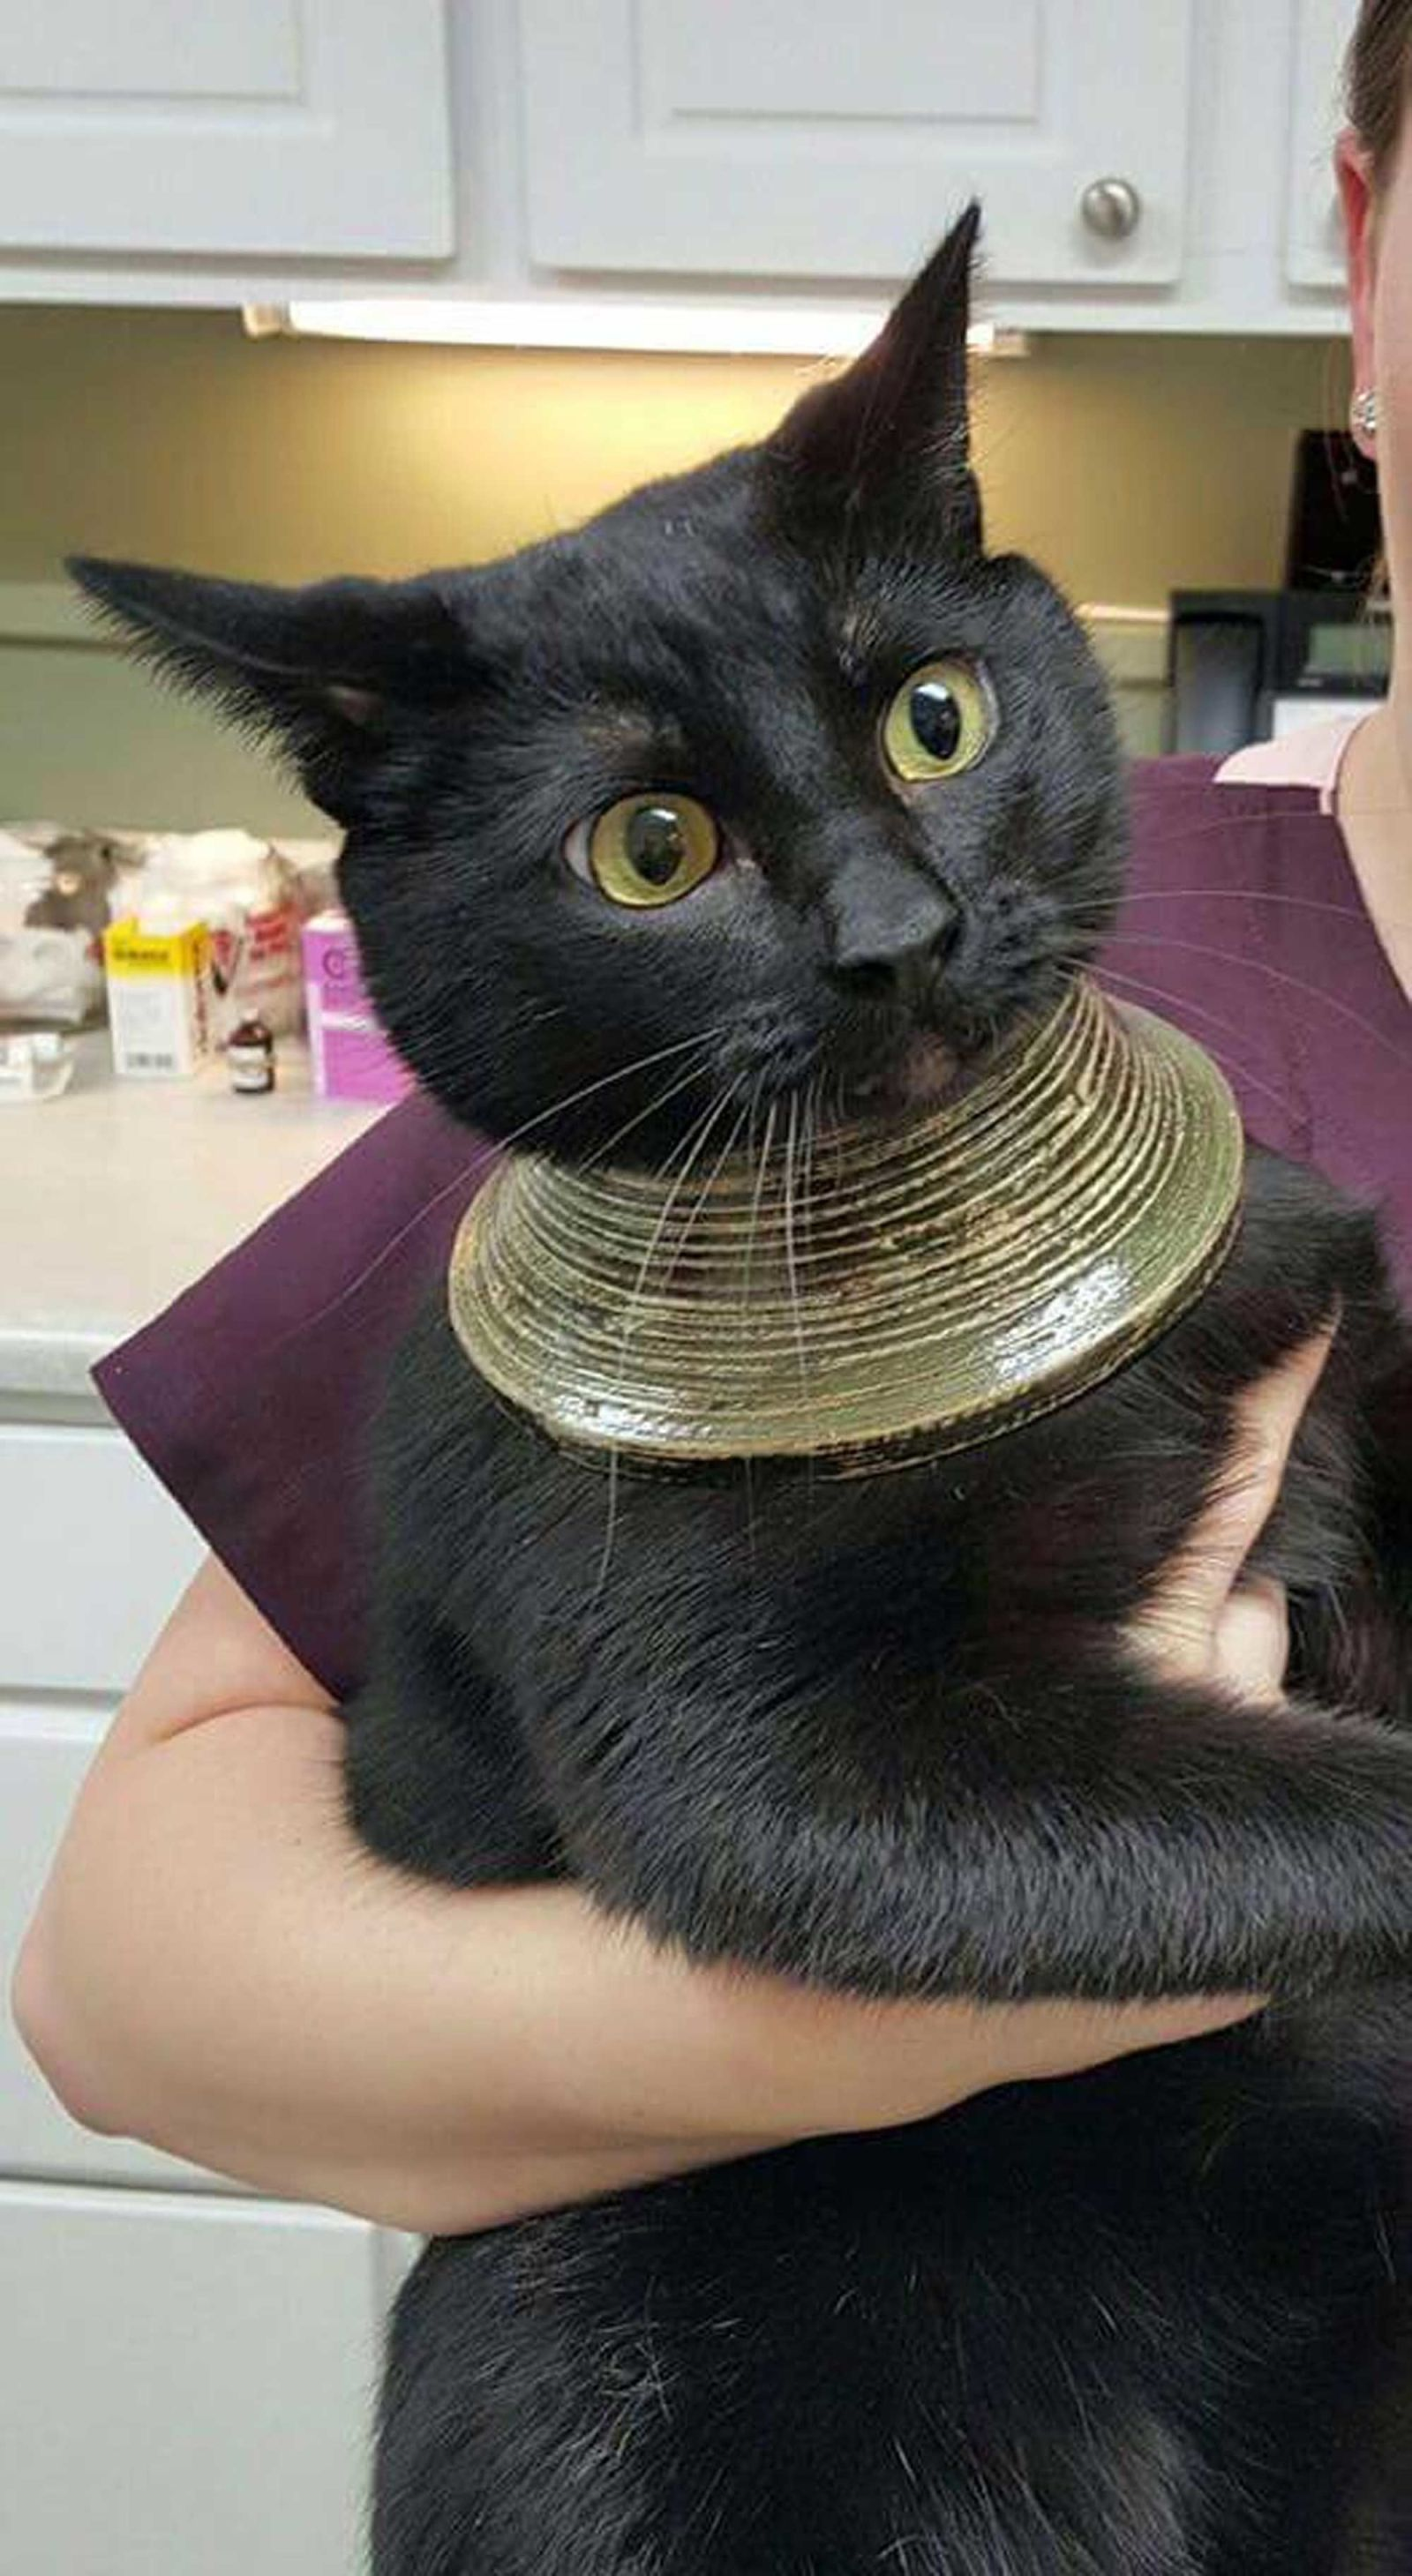 This Cat Accidentally Wearing a Necklace Is the Best Thing You'll See All Day